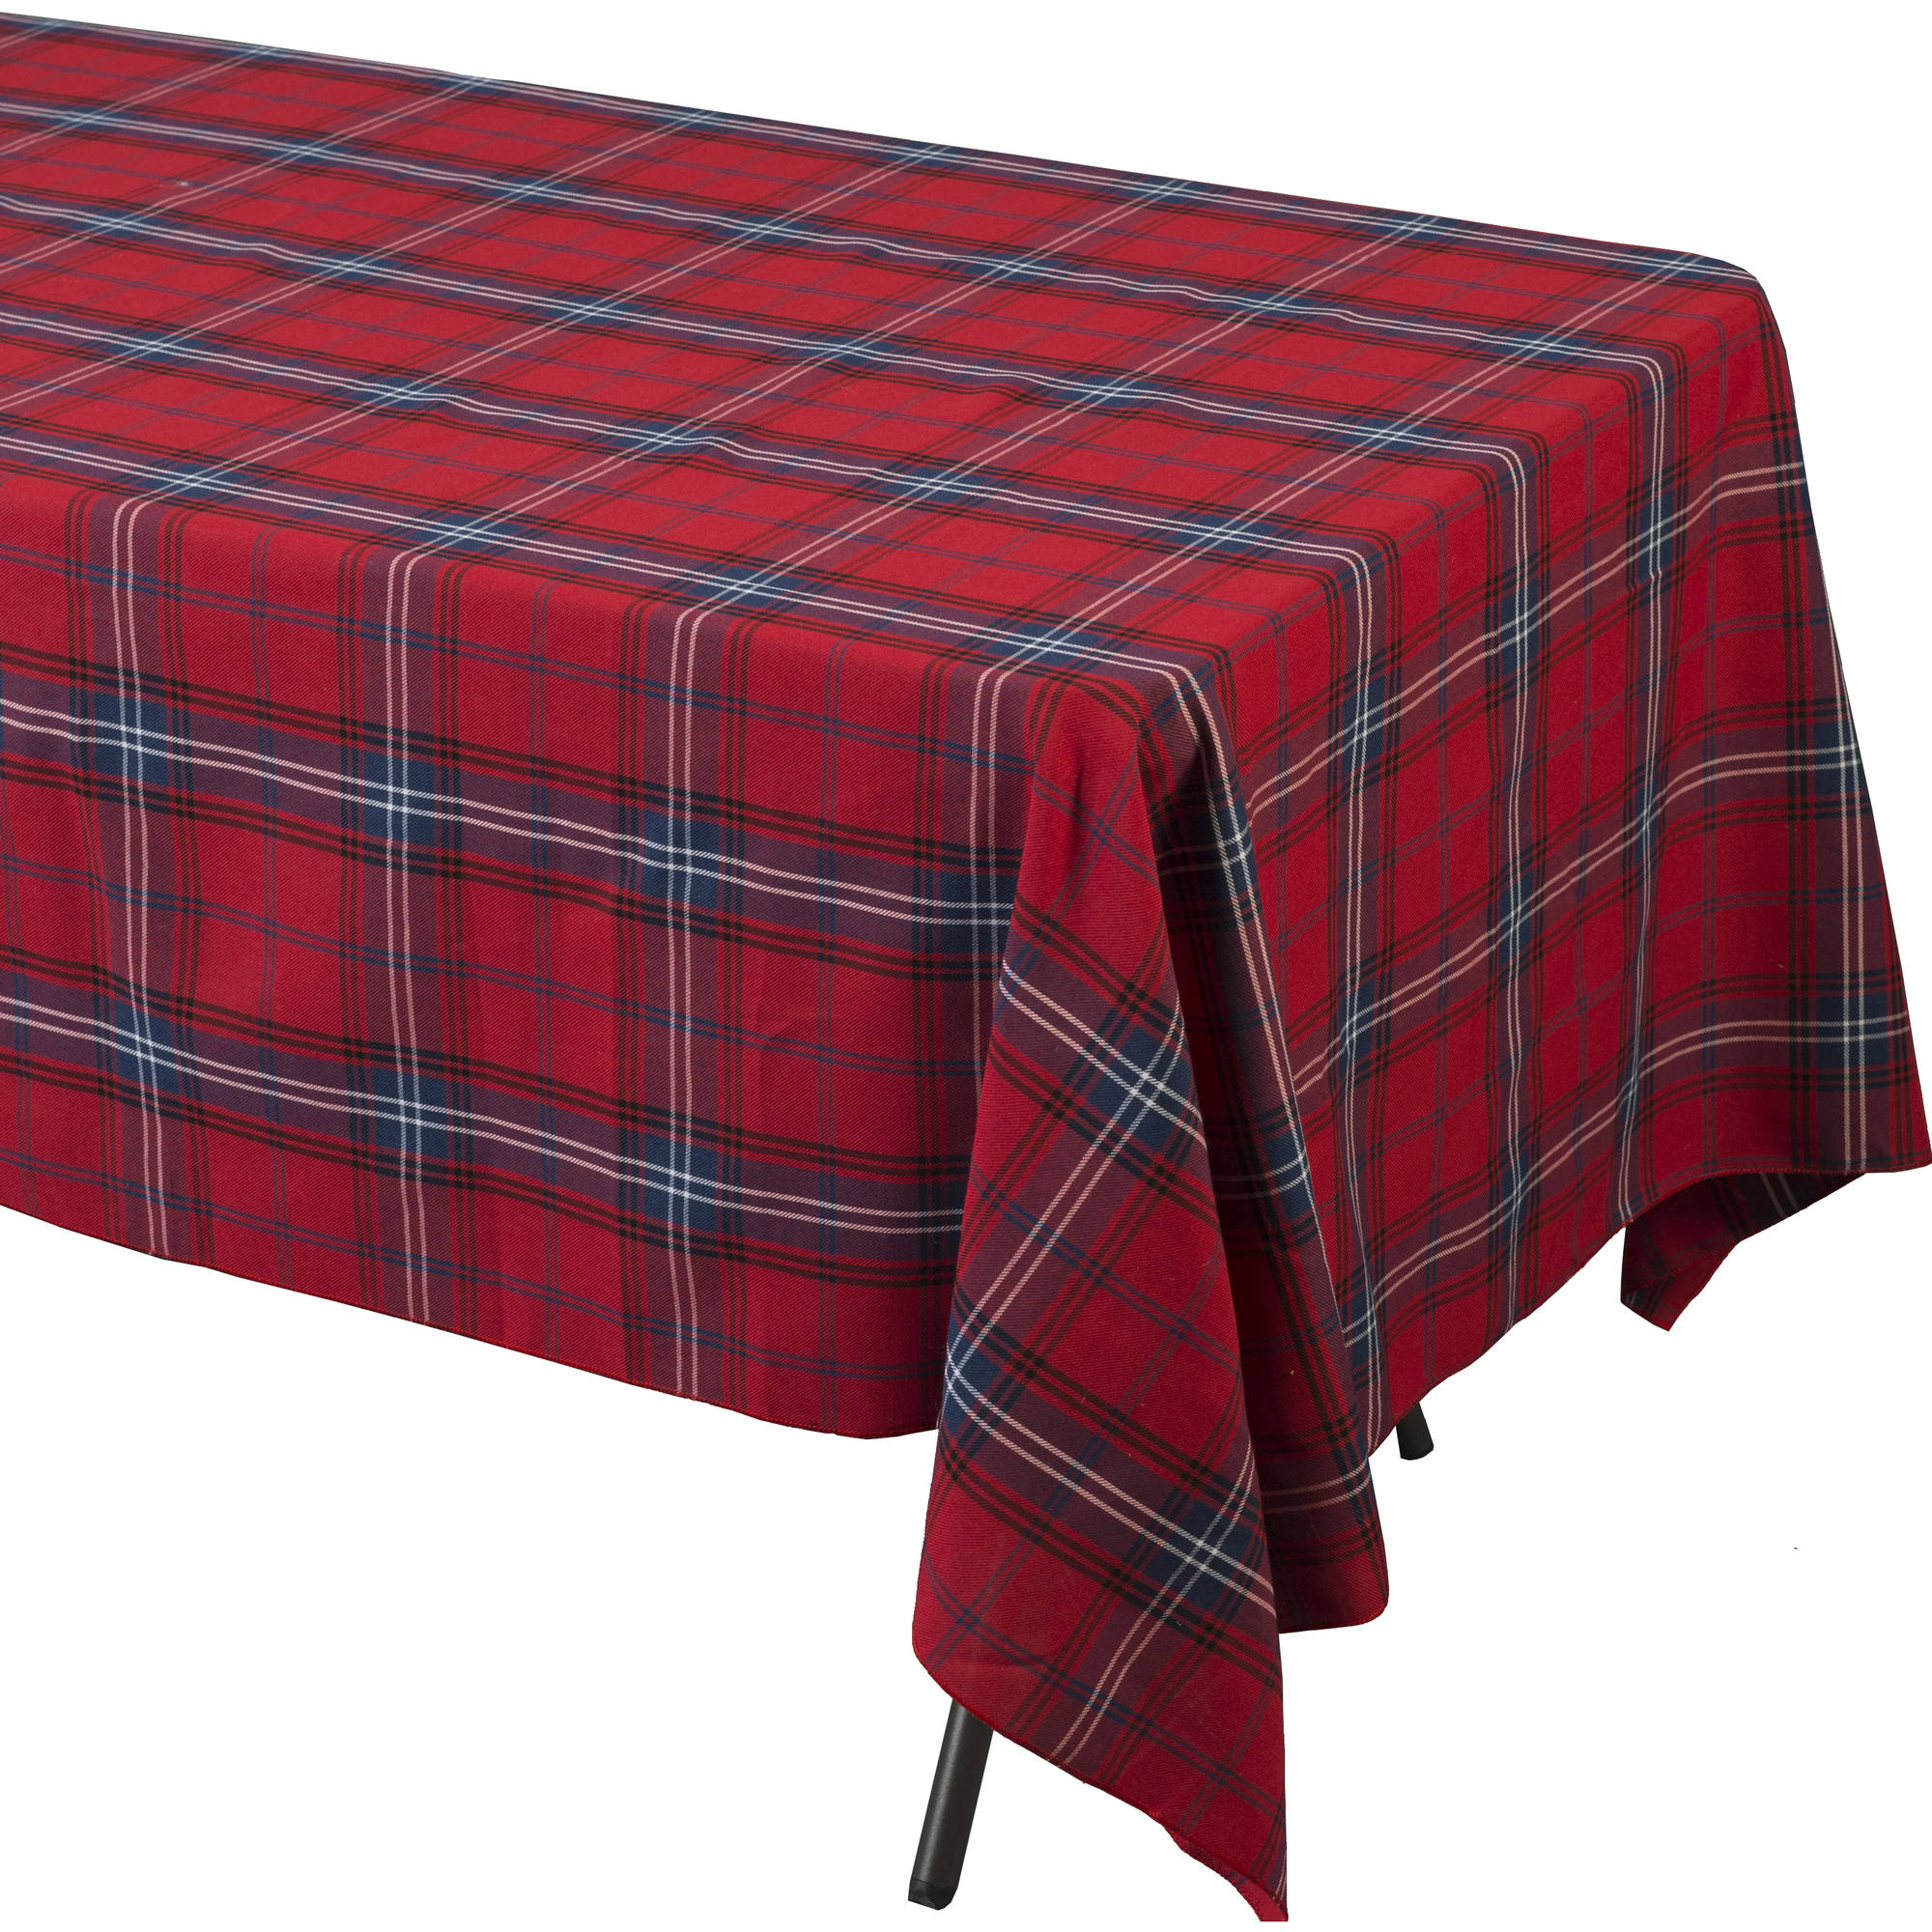 Tartan Plaid Rectangular Polyester Table Cover